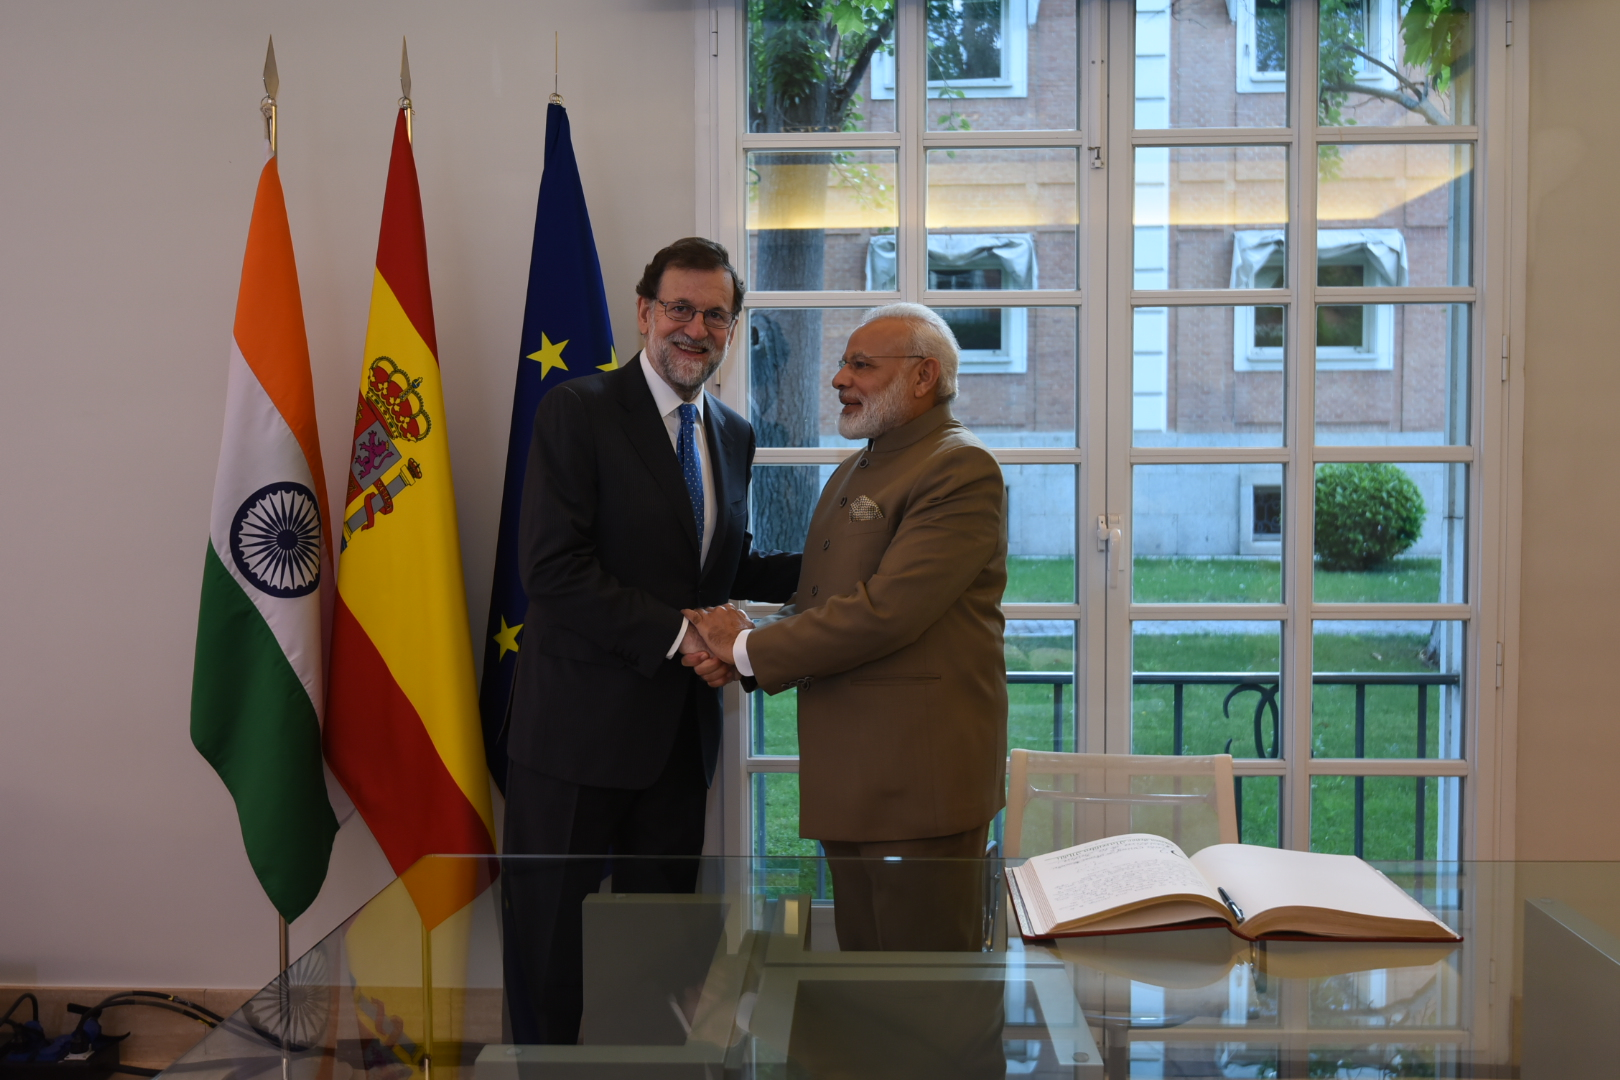 Prime Minister Narendra Modi (right) meeting the President of Spain, Mariano Rajoy, at La Moncloa Palace, in Madrid, Spain. Photo courtesy: MEA